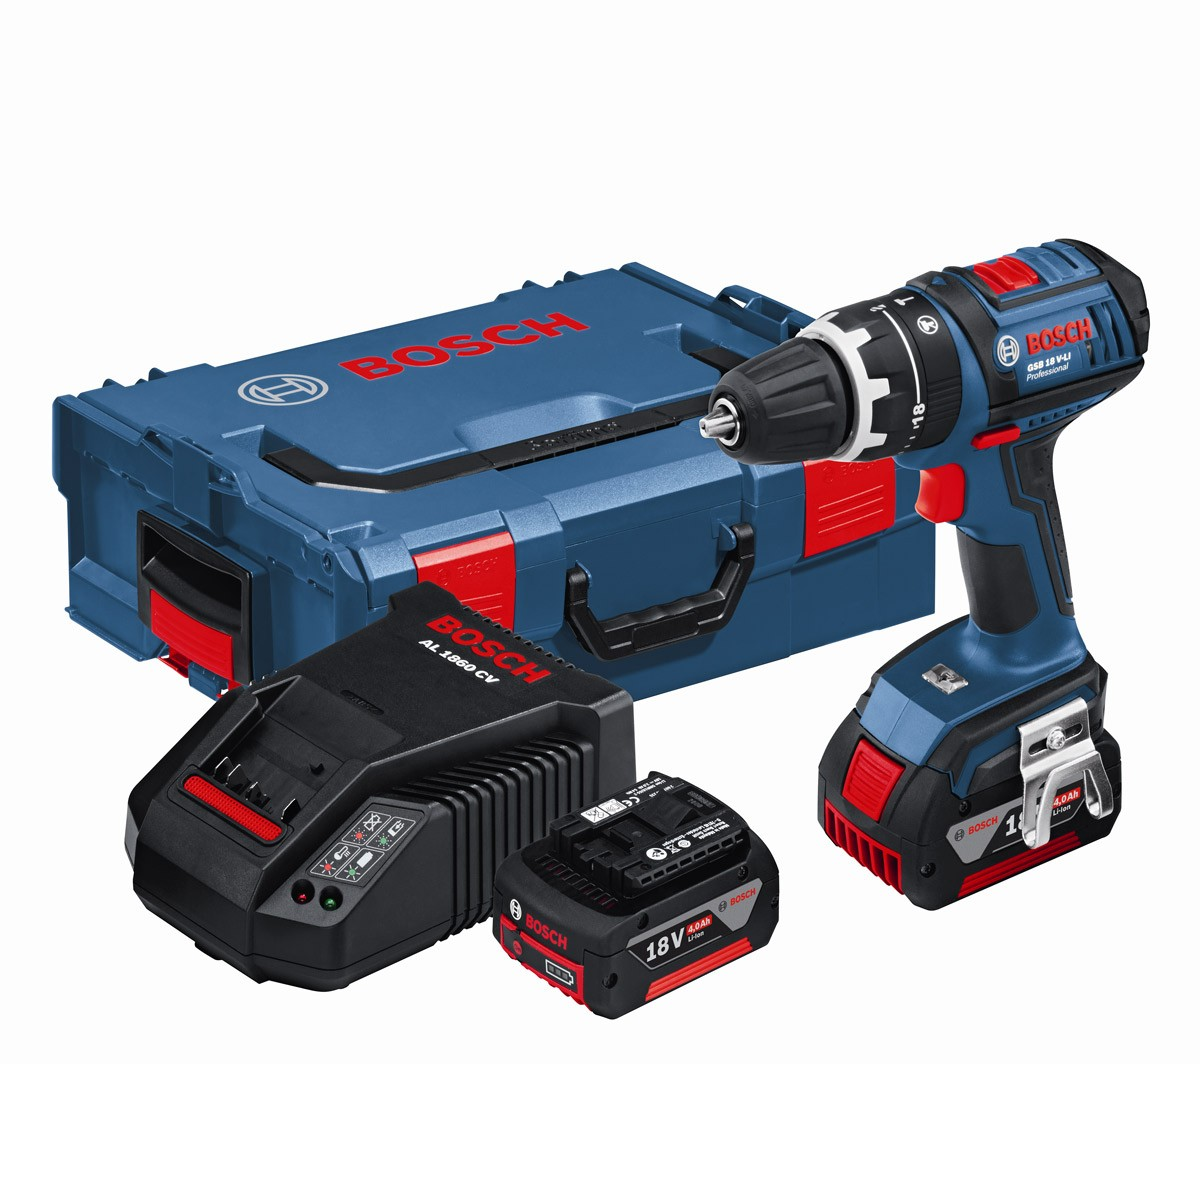 Bosch GSB 18 V-LI Combi Drill Dynamic Series inc 2x 4Ah Batts